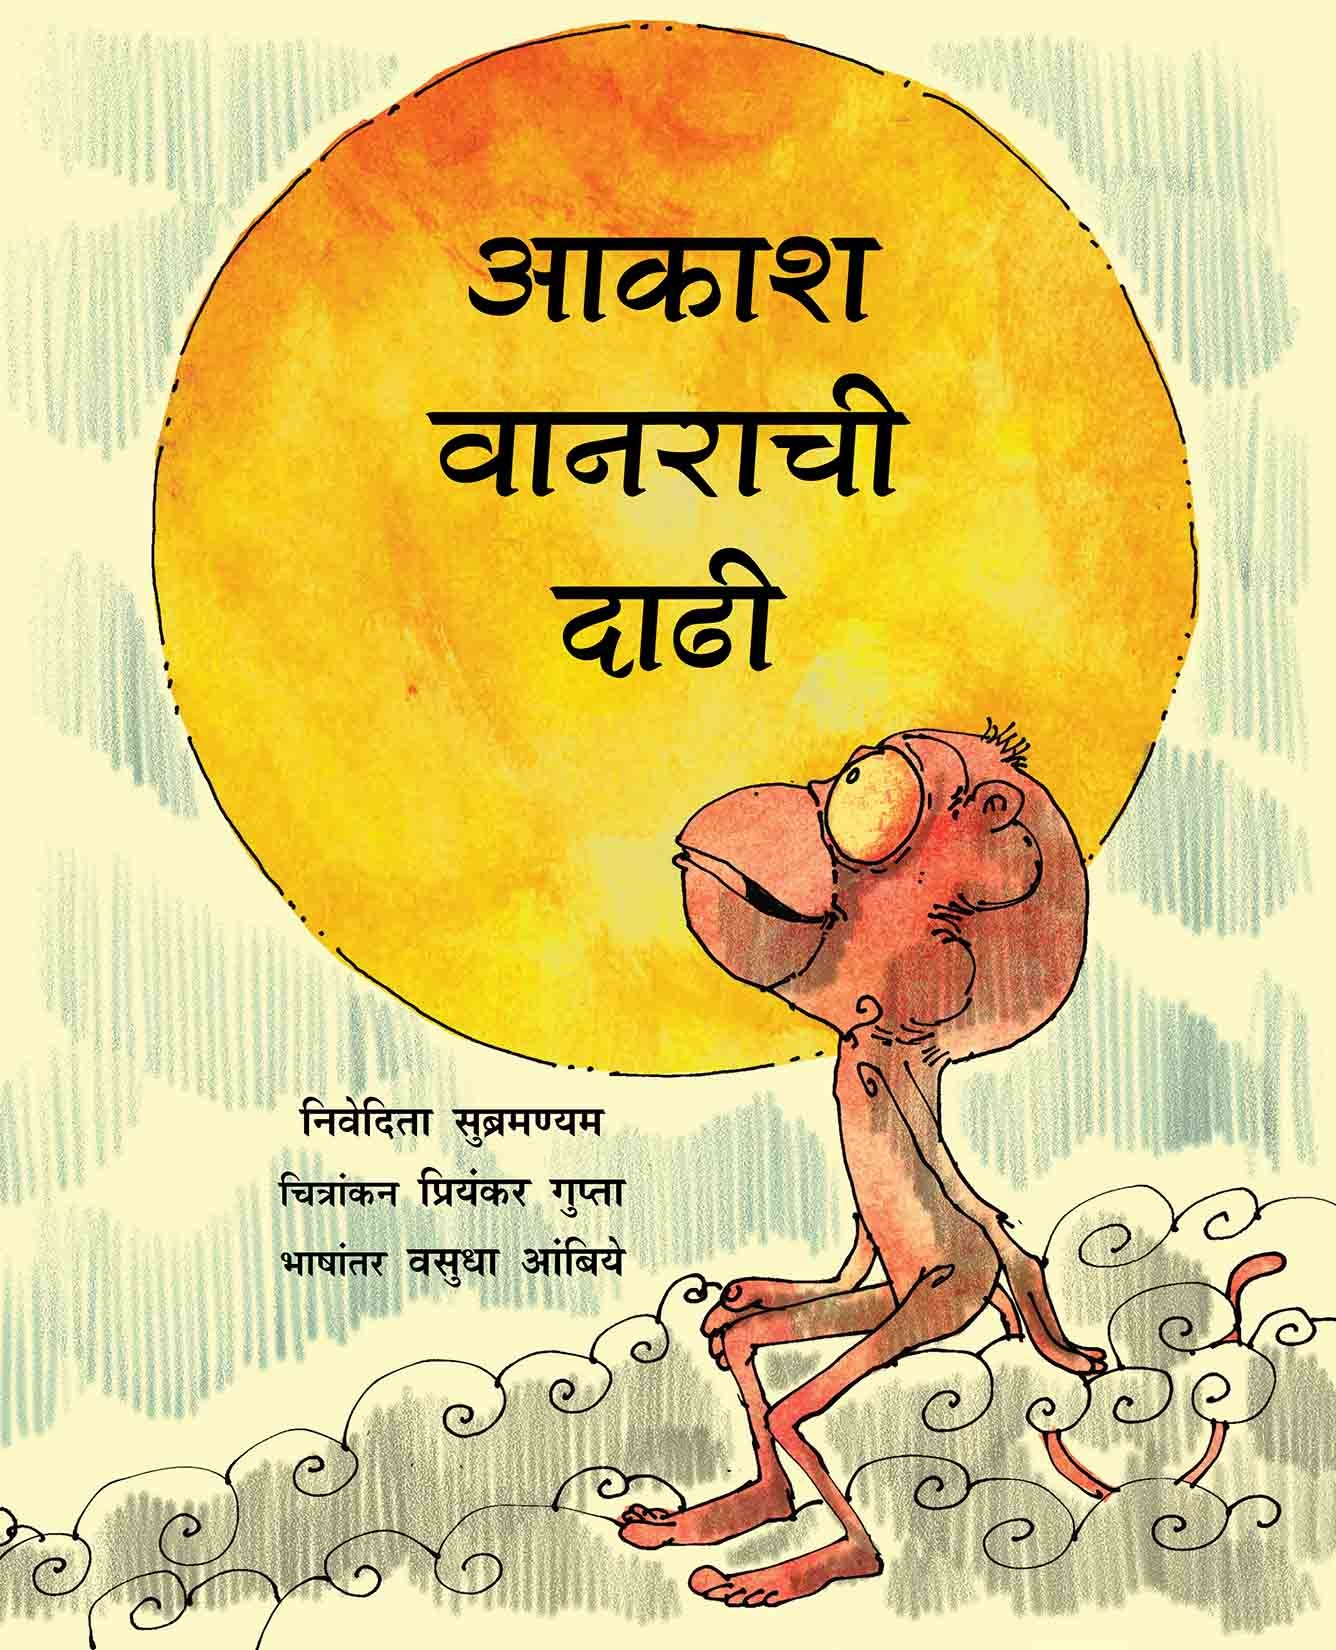 The Sky Monkey's Beard/Aakaash Vaanaraachi Daaddhi (Marathi)